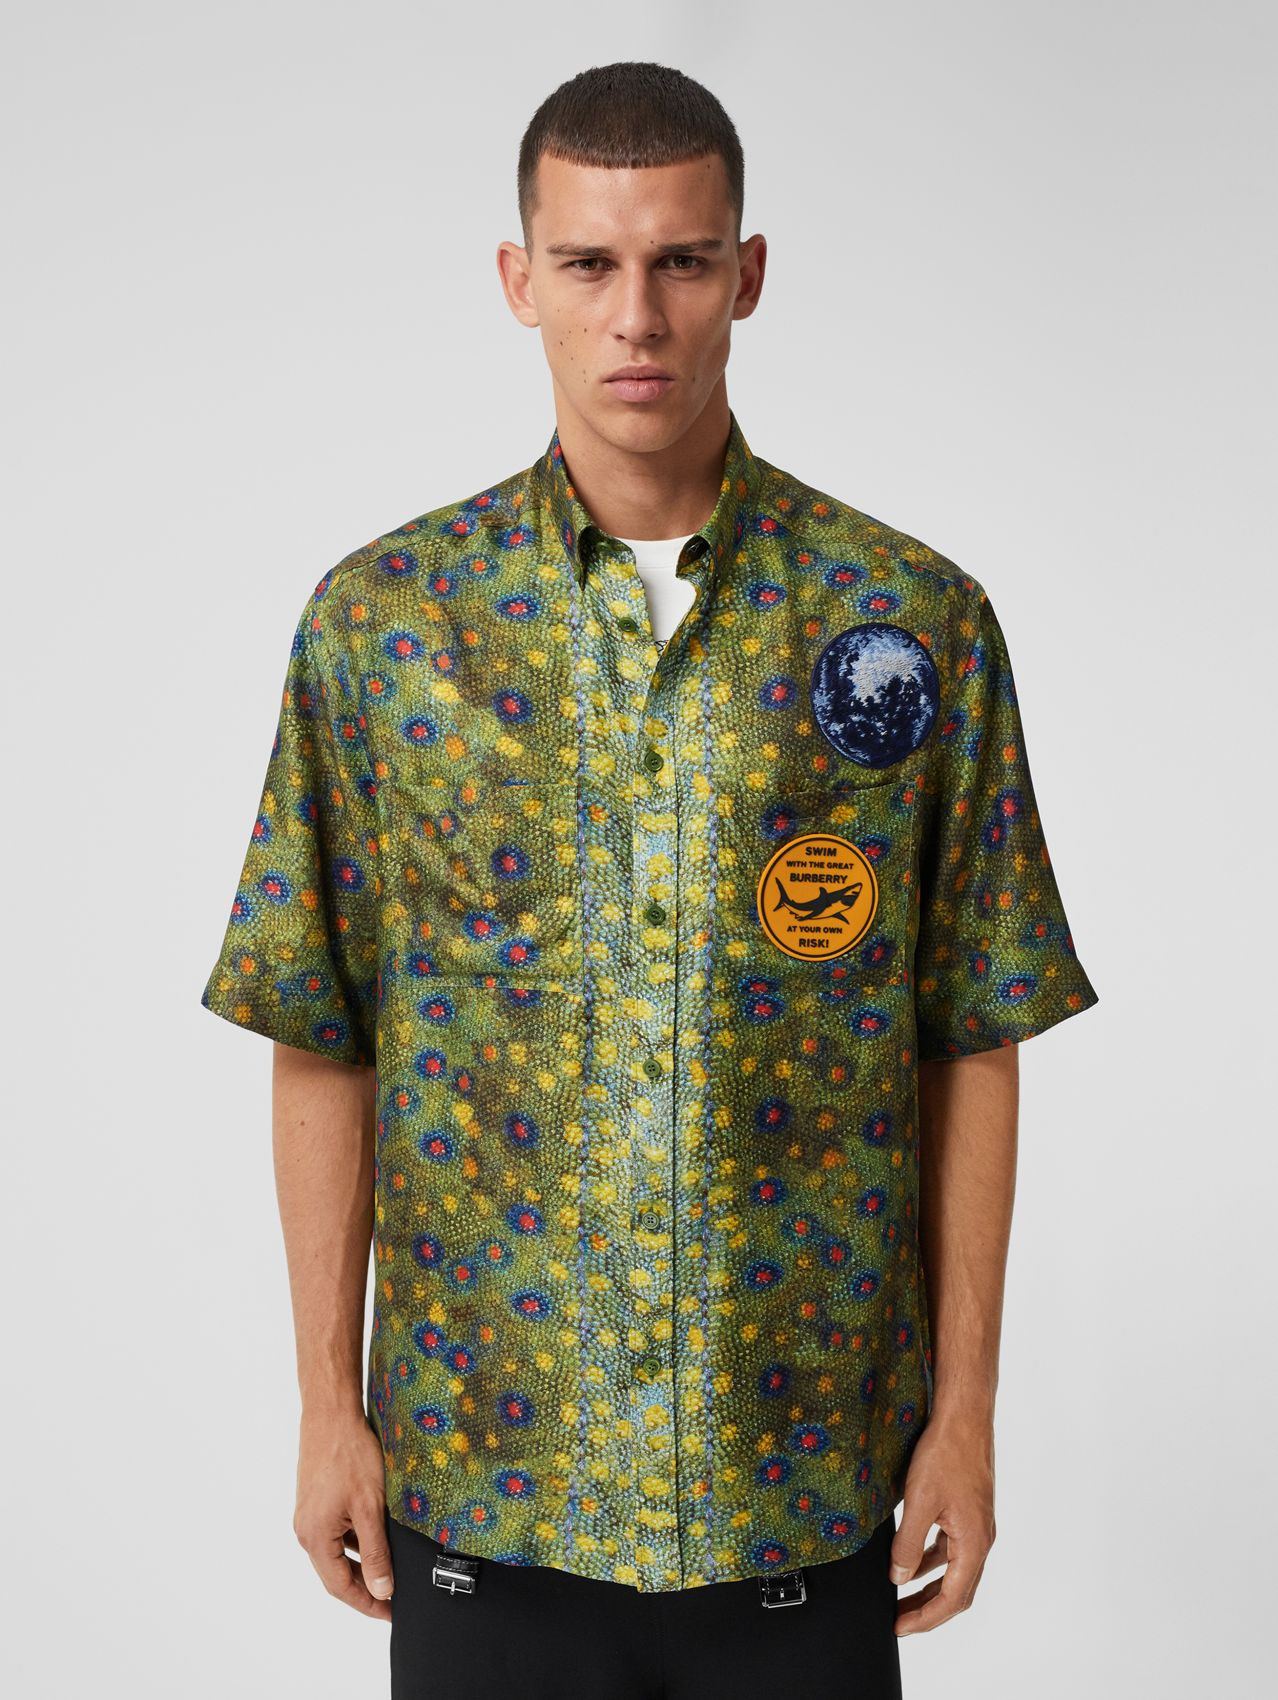 Short-sleeve Graphic Appliqué Fish-scale Print Shirt in Olive